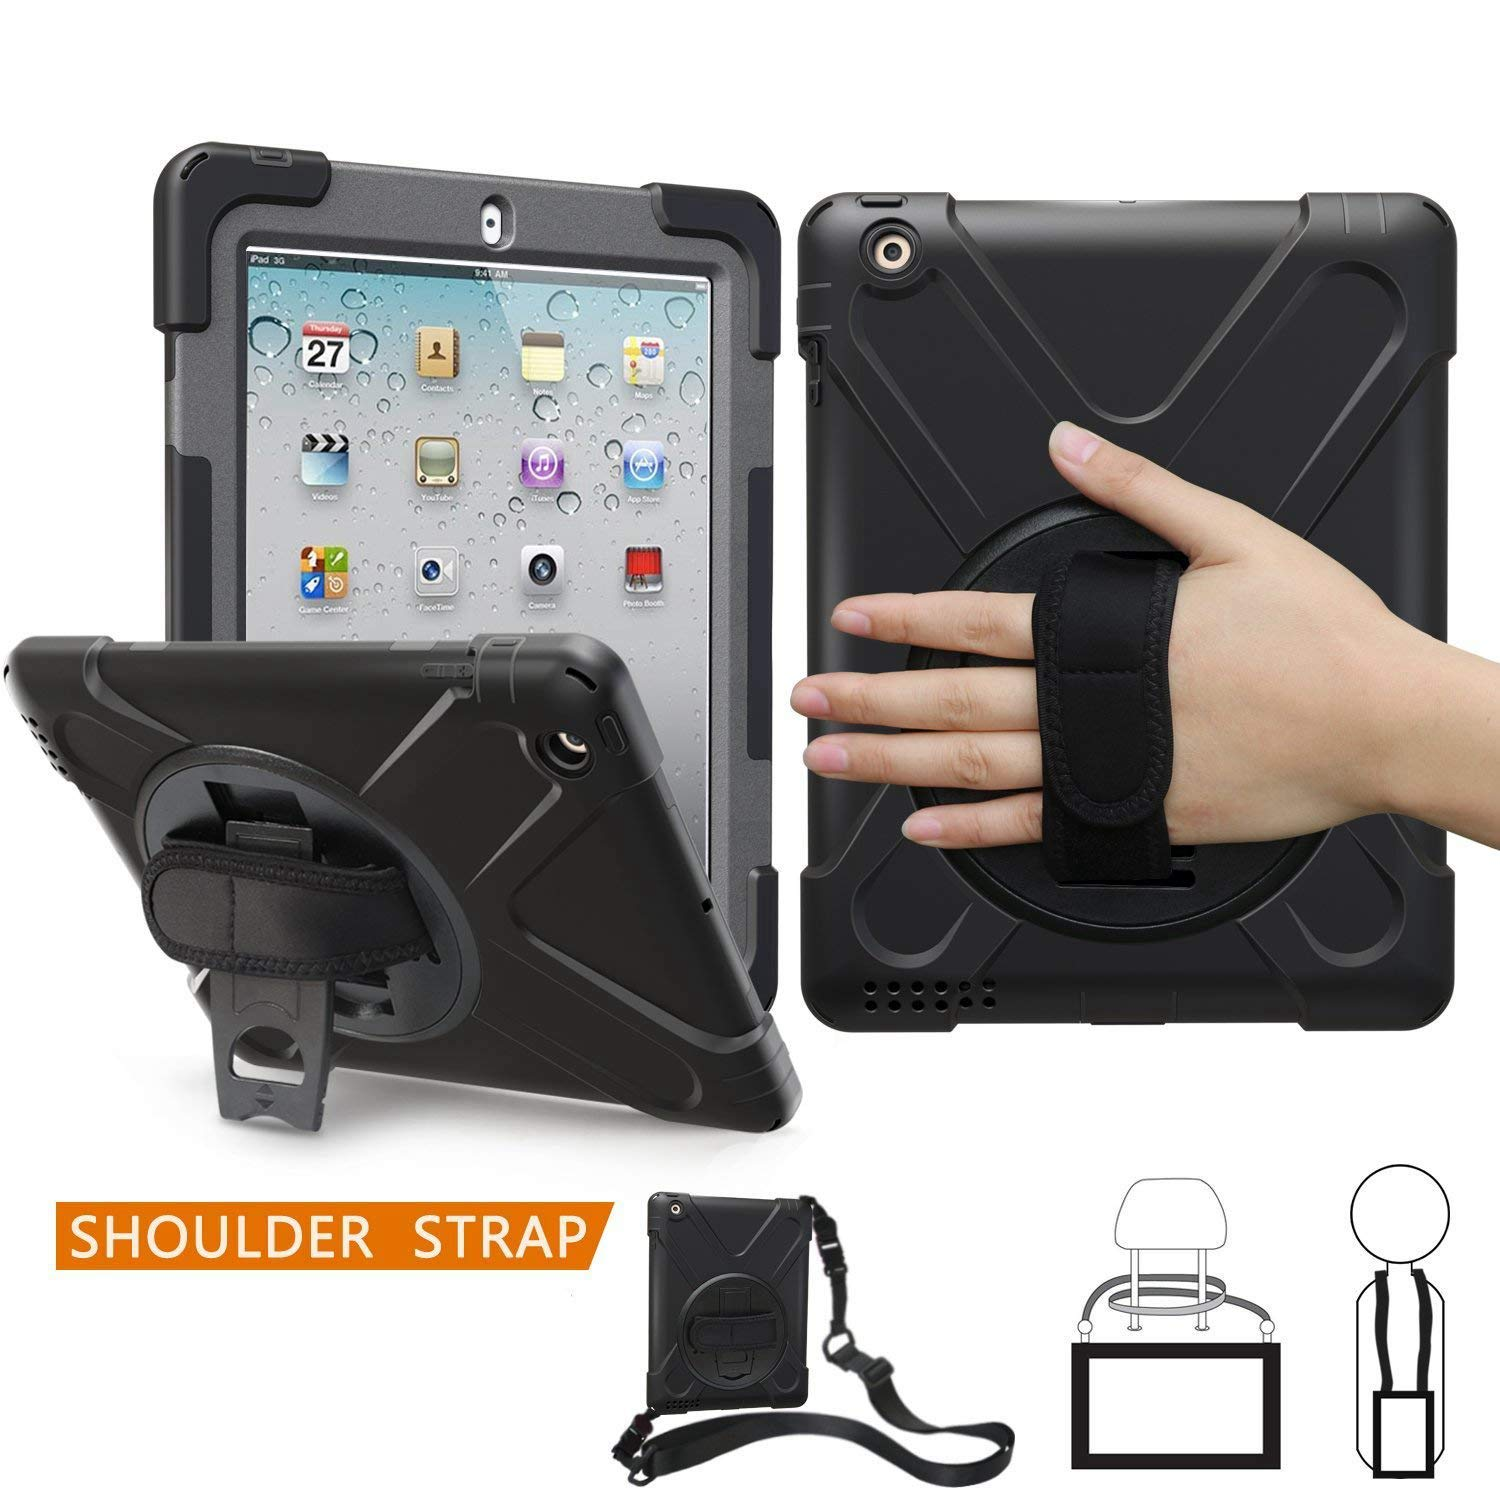 iPad 2/3/4 Case, TSQ Heavy Duty Caryying Rugged Protective Case With Handle  Hand Grip, Shoulder Strap&360 Degree Stand, For Kids Girl Boy Apple Tablet